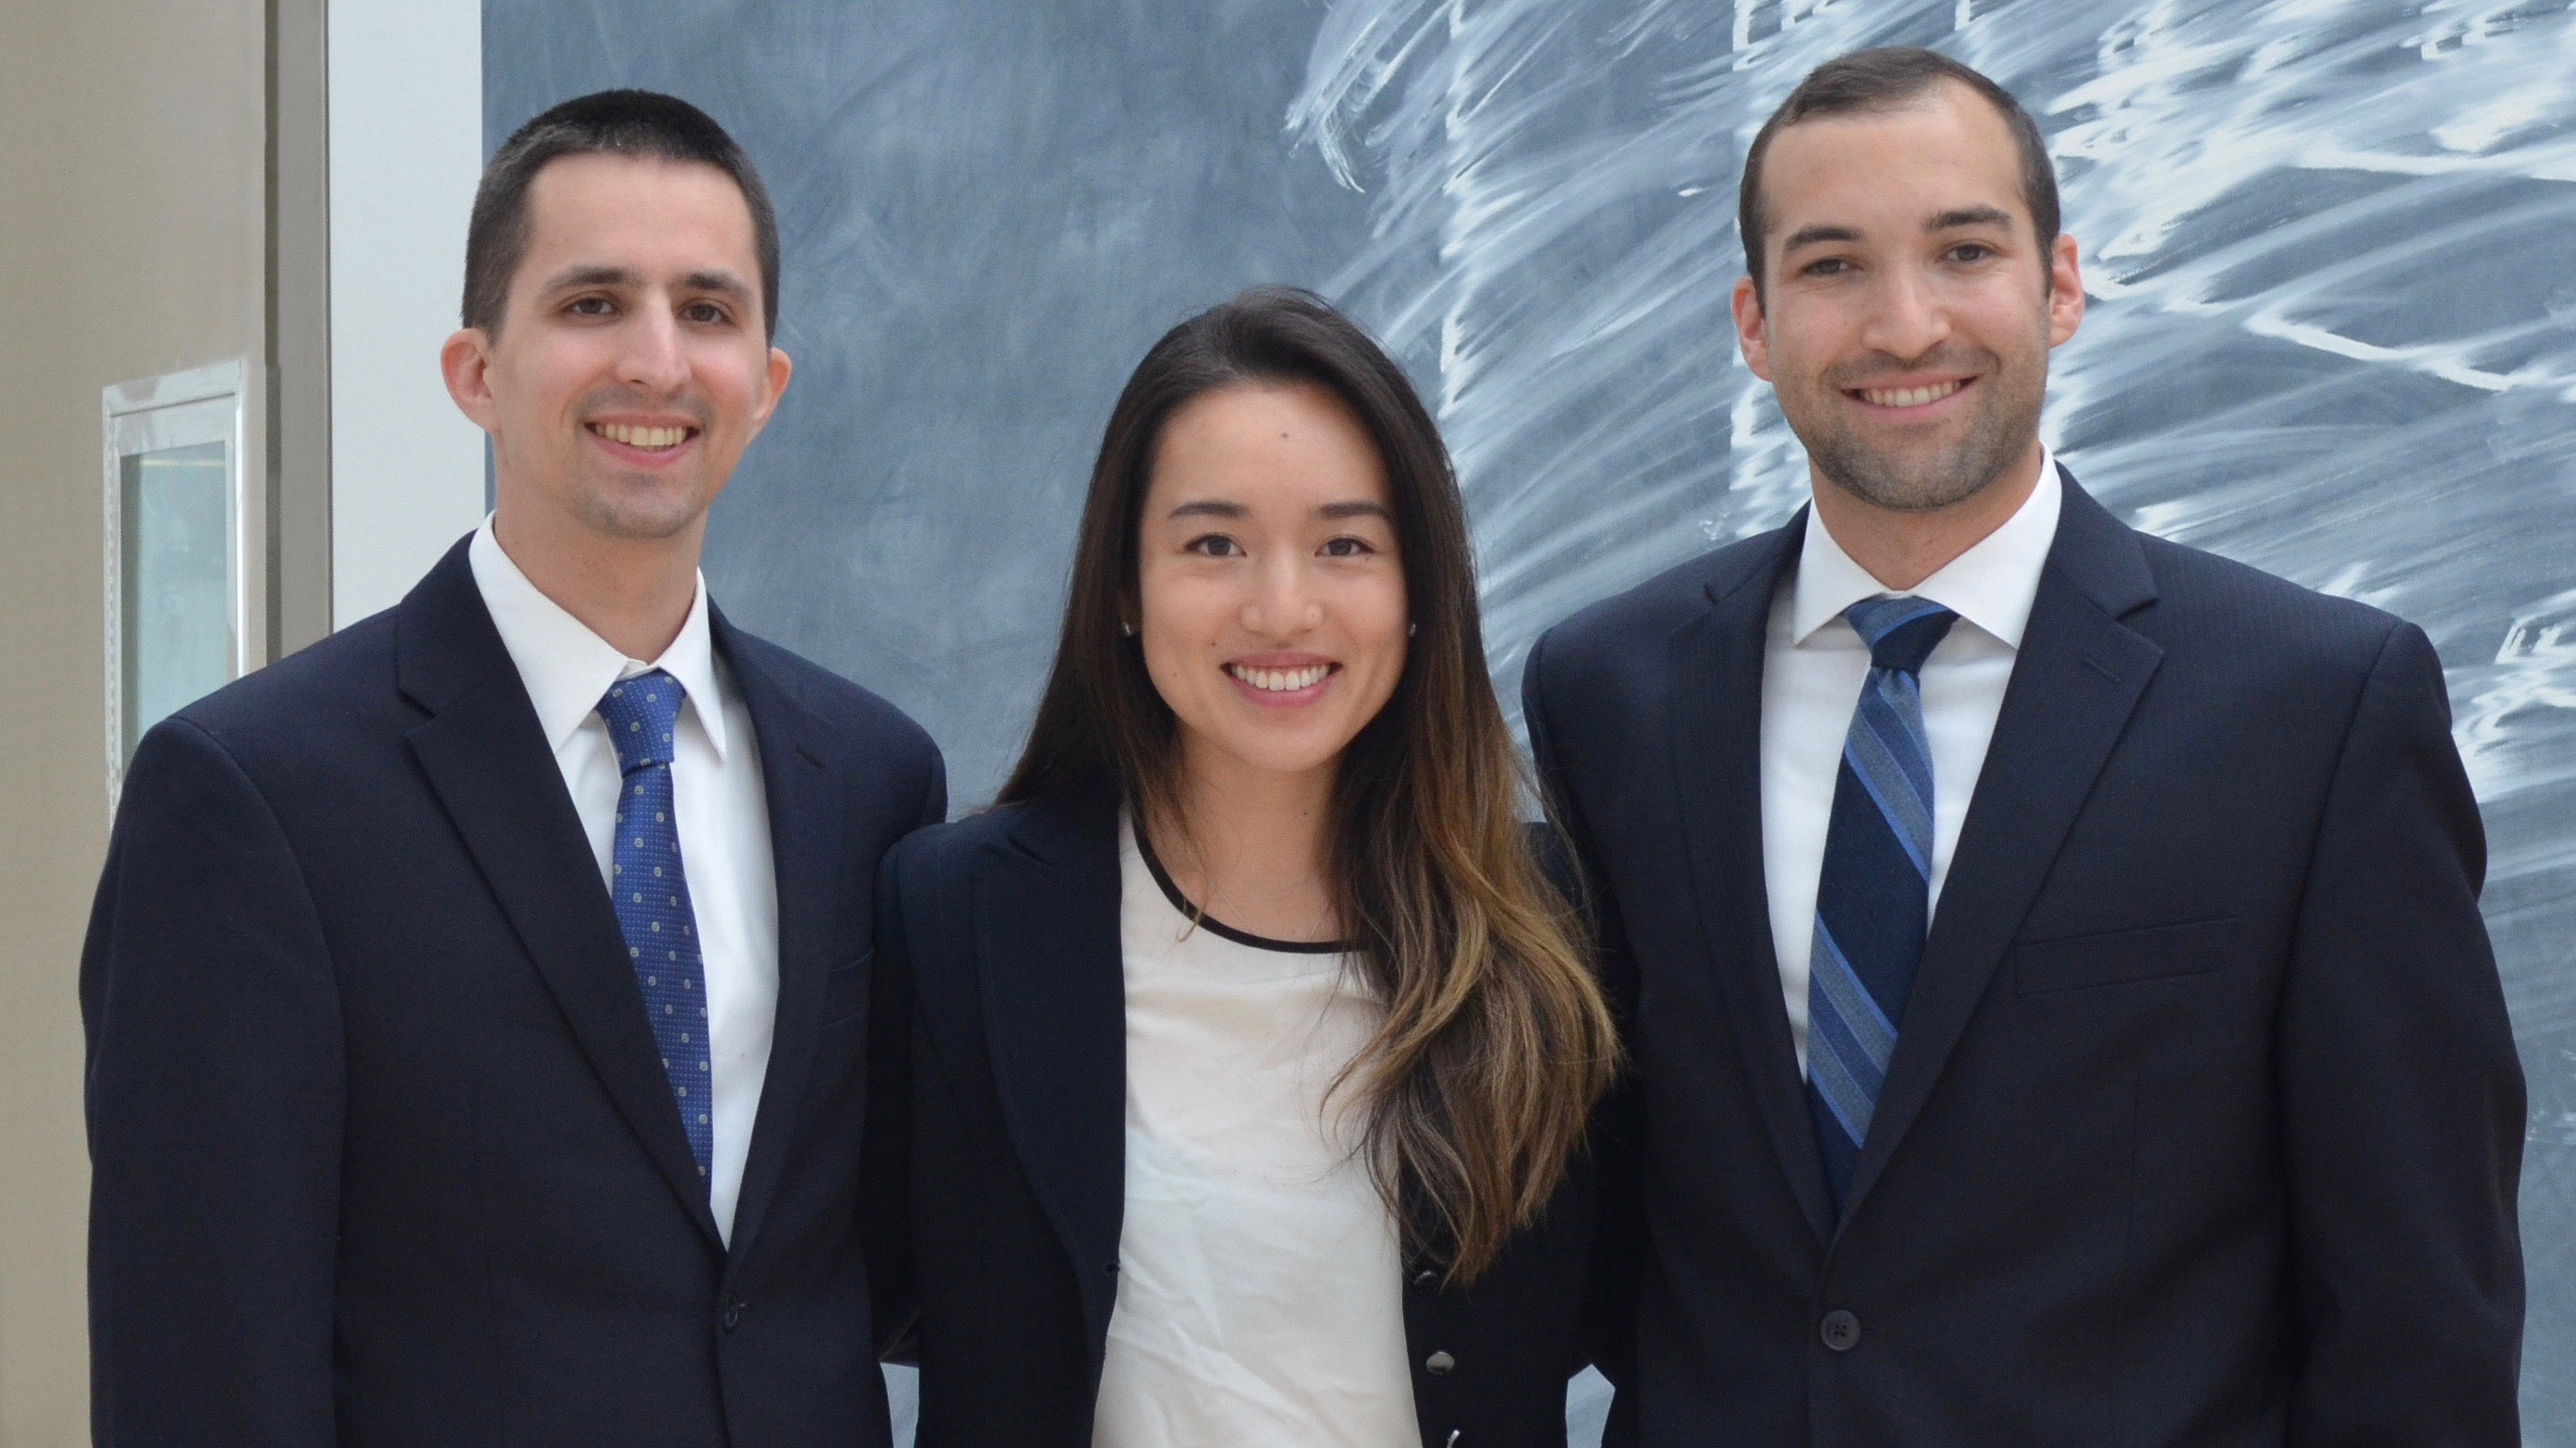 Chief Residents (from left): Drs. John Rubin, Cindy Cheung, and Matthew Perlstein